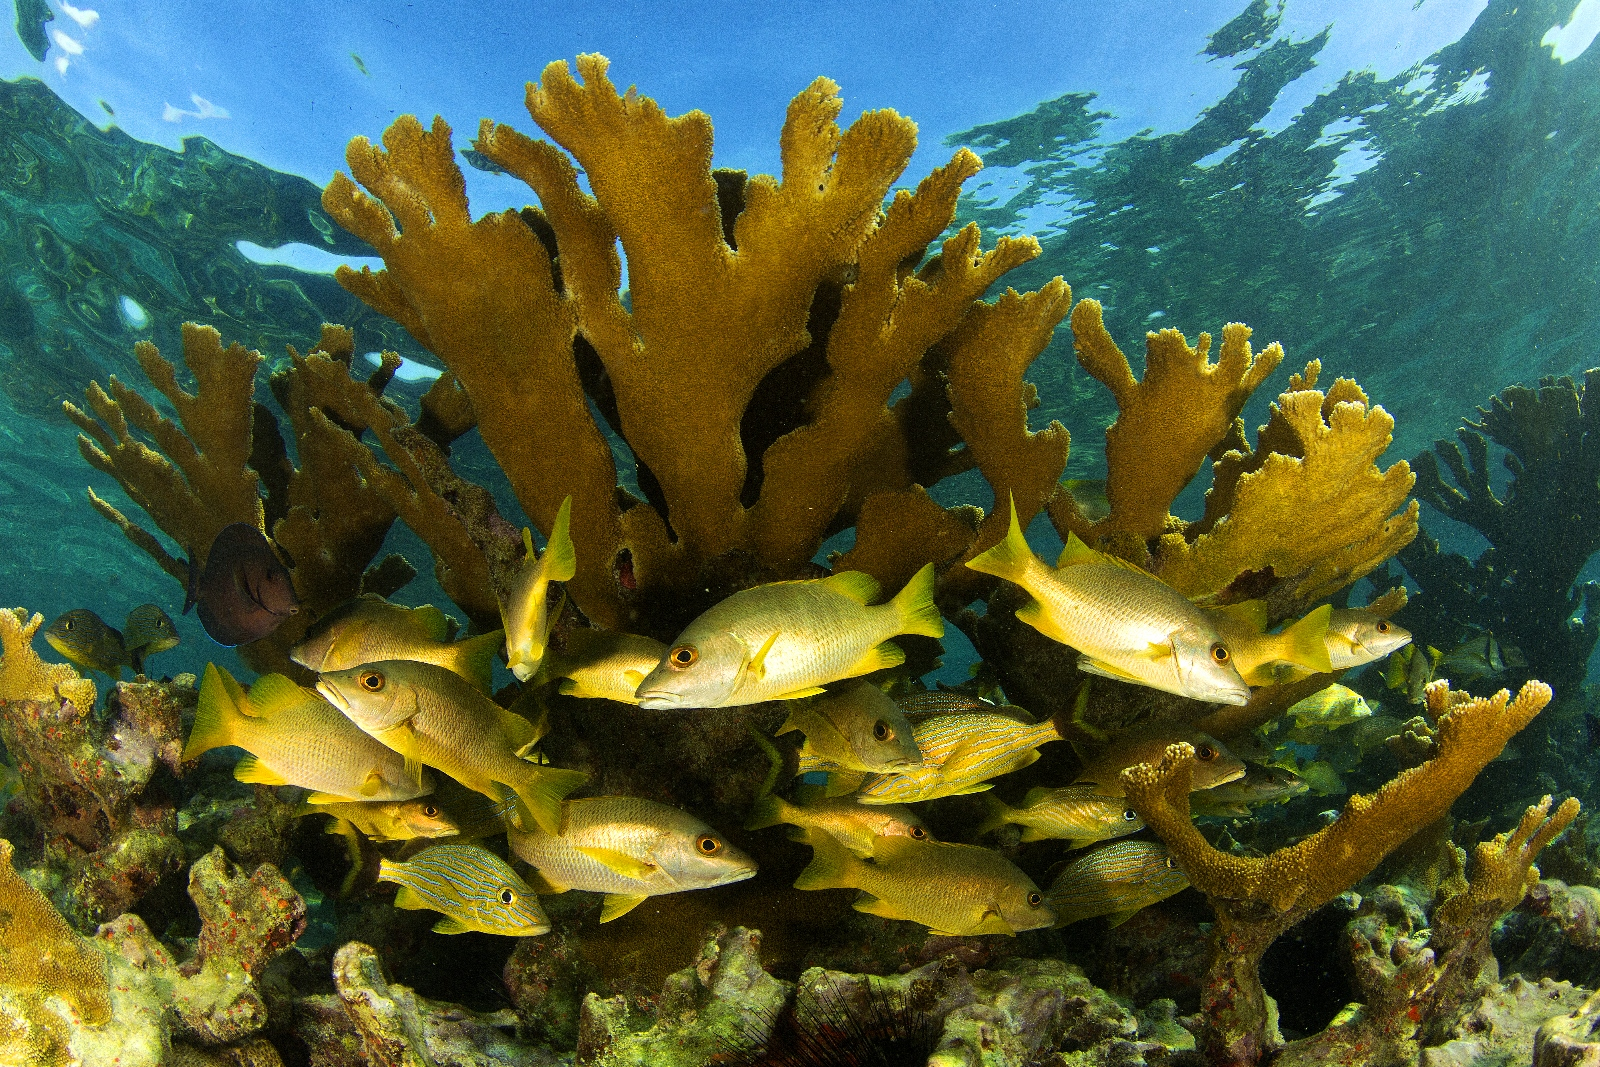 Two-hundred Years of Cuban Coral Arrives in Santa Cruz